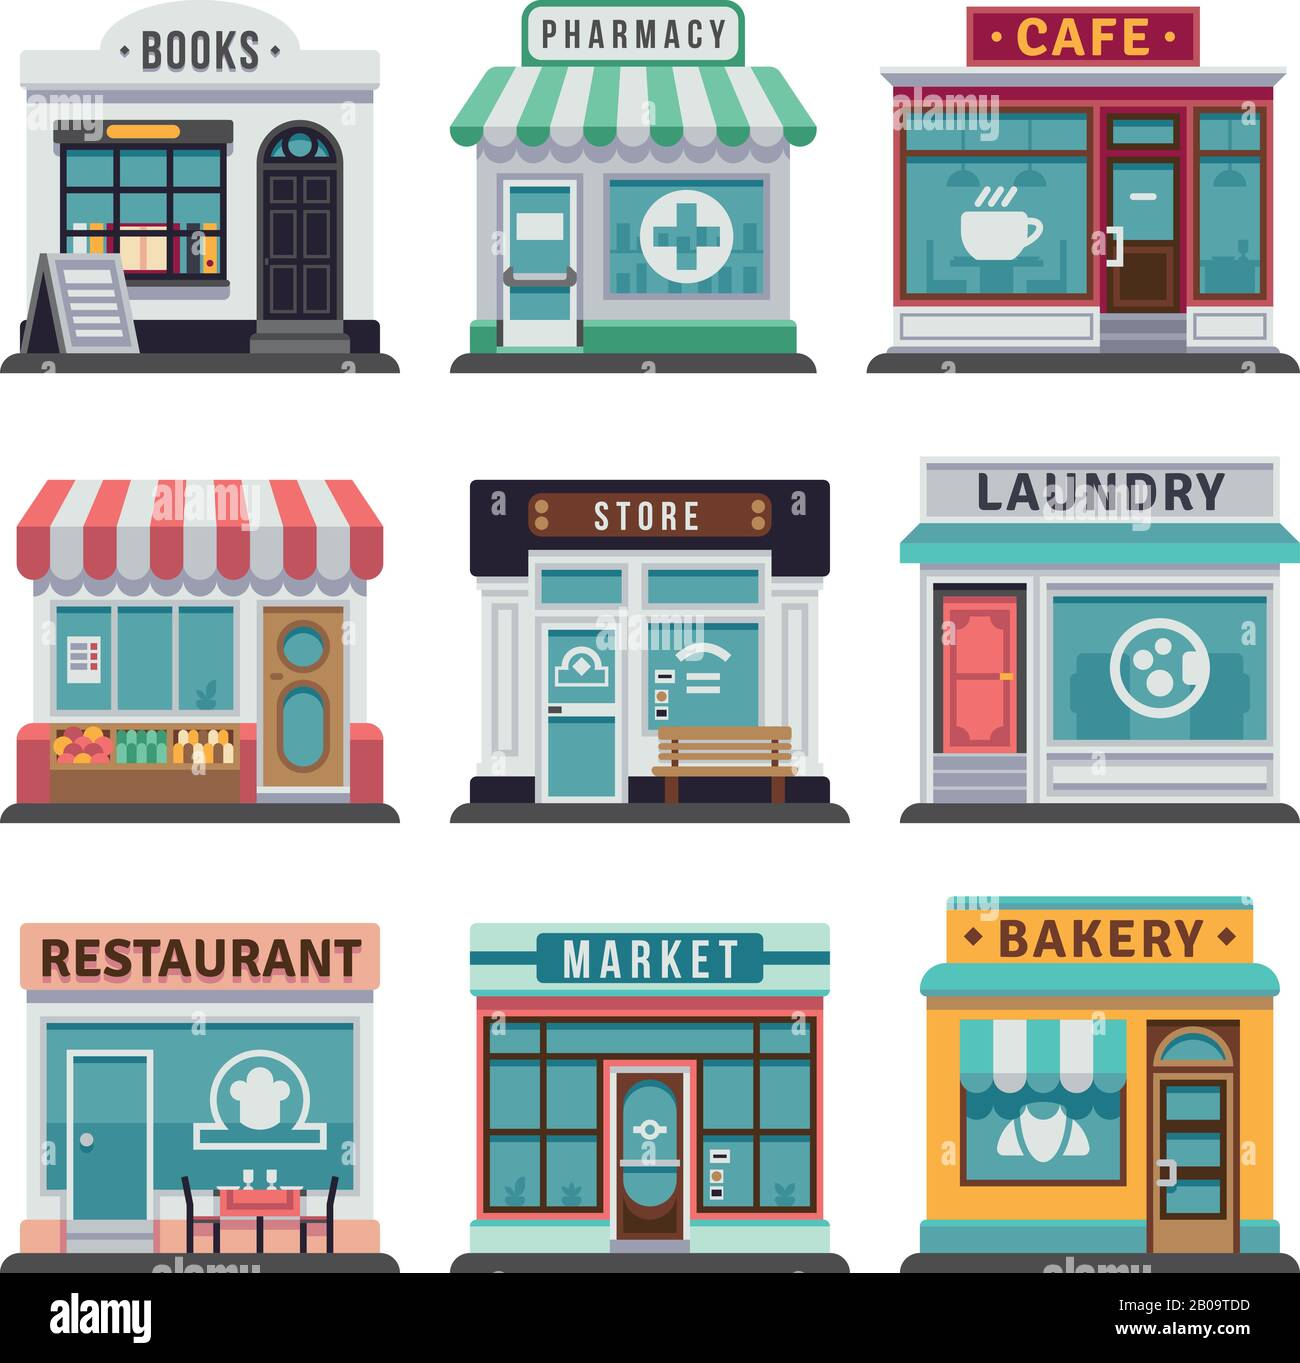 Modern Fast Food Restaurant And Shop Buildings Store Facades Boutiques With Showcase Flat Icons Exterior Market And Restaurant Illustration Of Exterior Facade Store Building Stock Vector Image Art Alamy